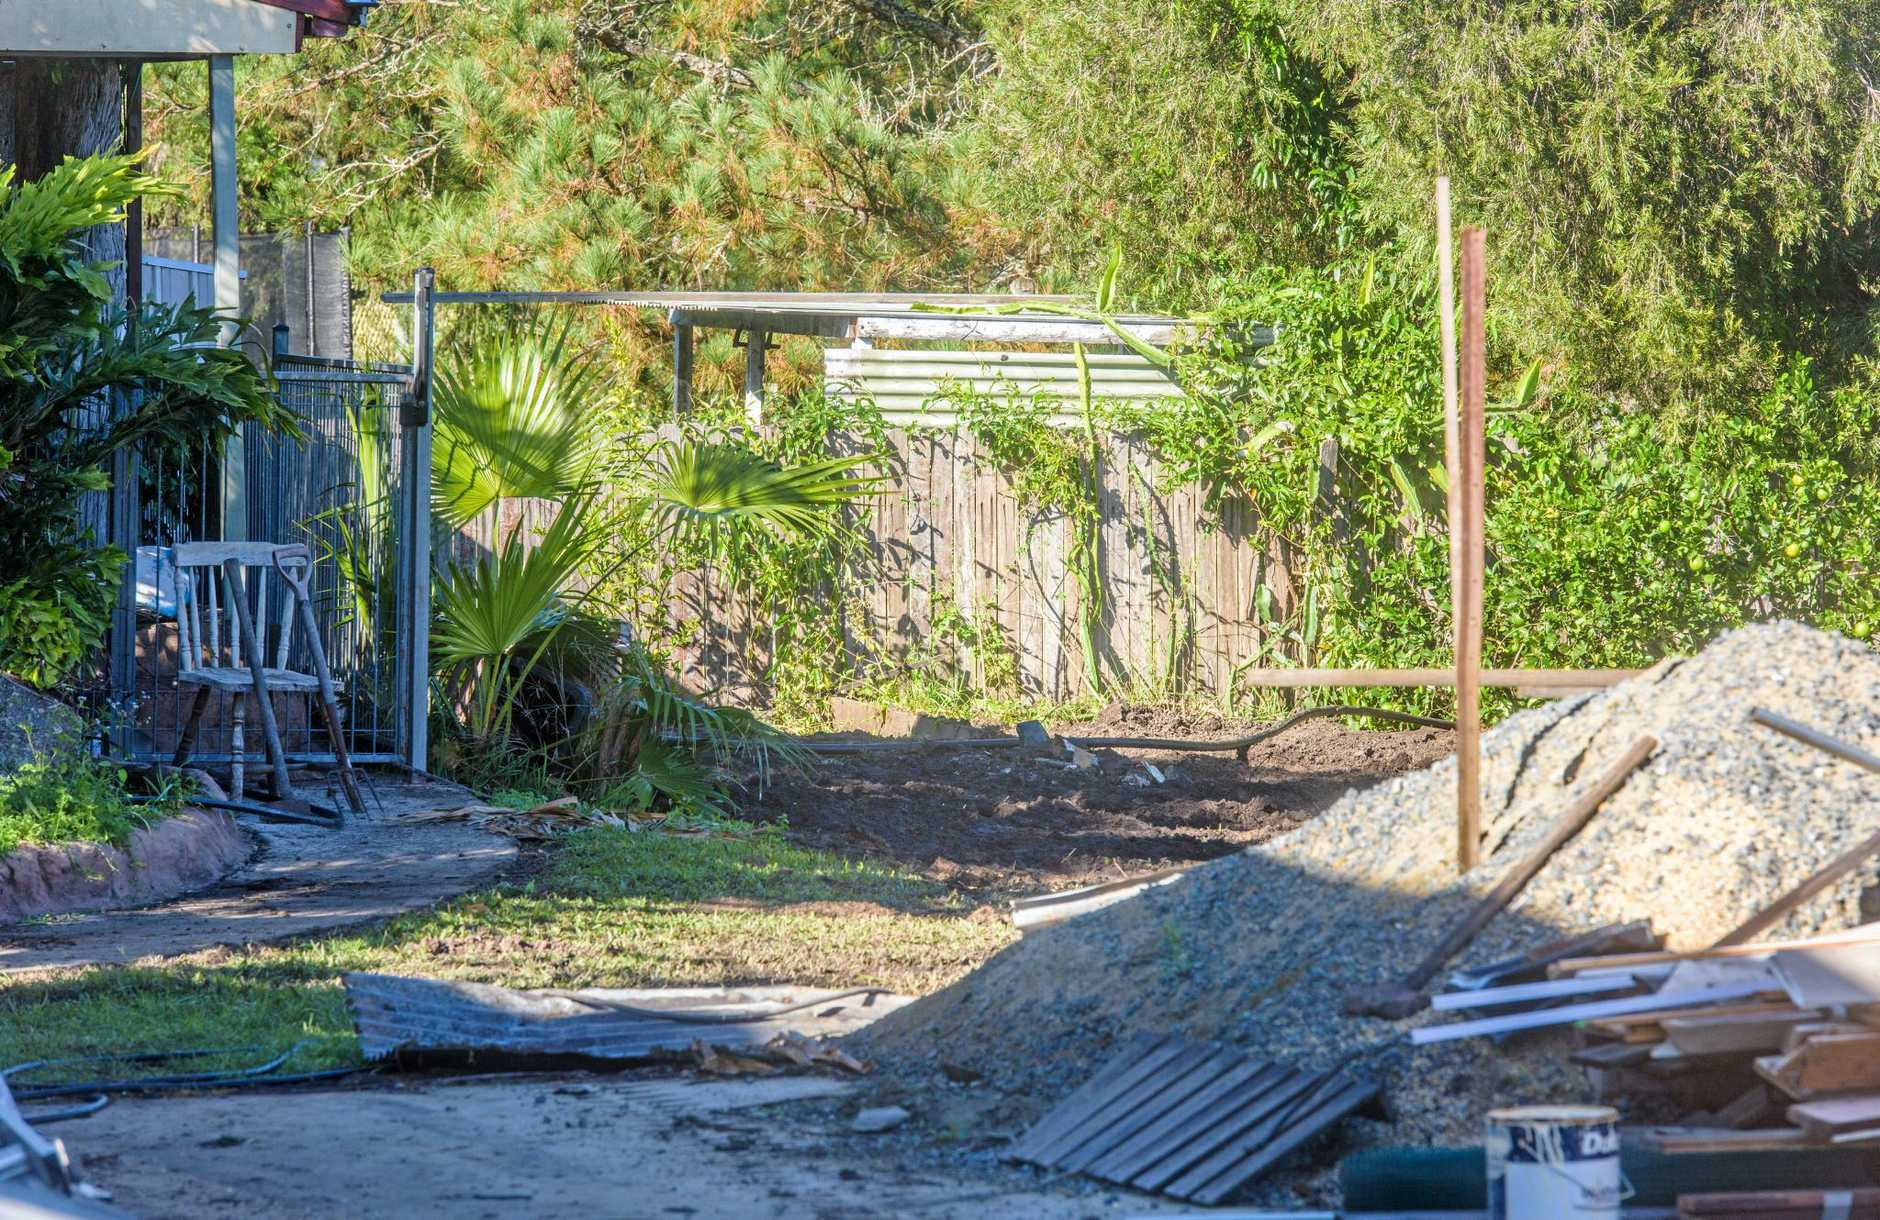 EXTENSIVE SEARCH: The yard at Lawrence that was excavated by police.